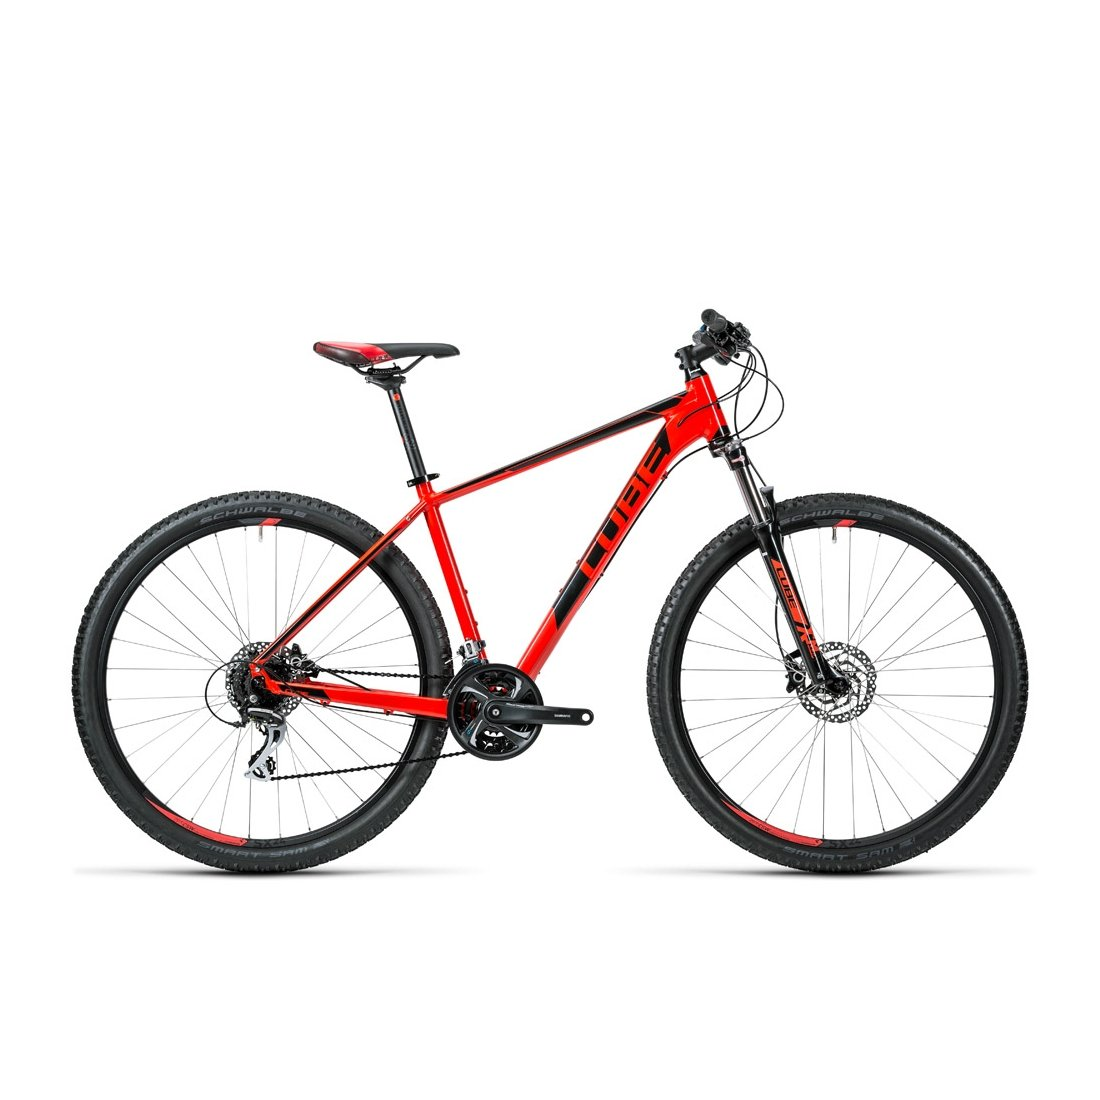 VTT CUBE Aim SL red nblack 2016-19 29